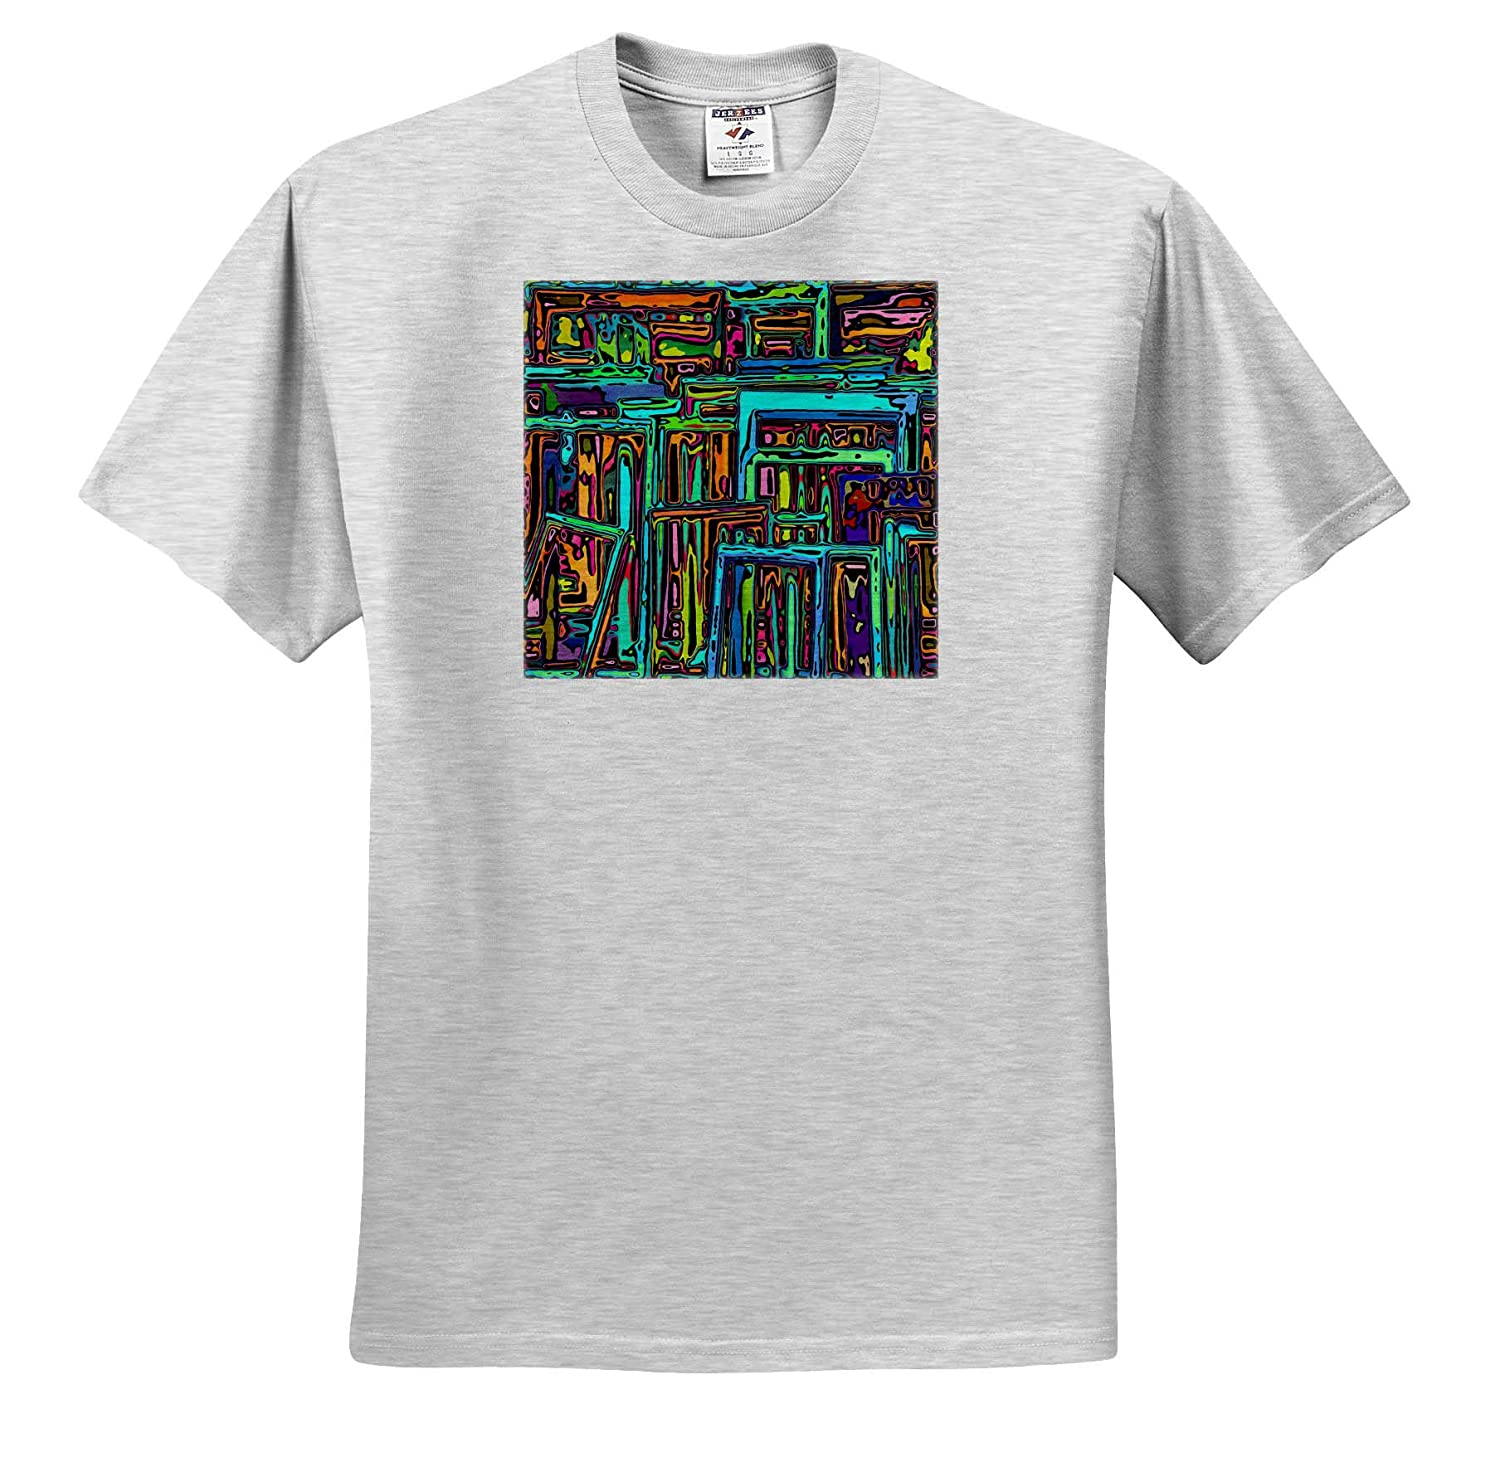 T-Shirts Graphic Design Modern Art of vibrantly Colored Rectangular Shapes chaotically Stacked 3dRose Perkins Designs